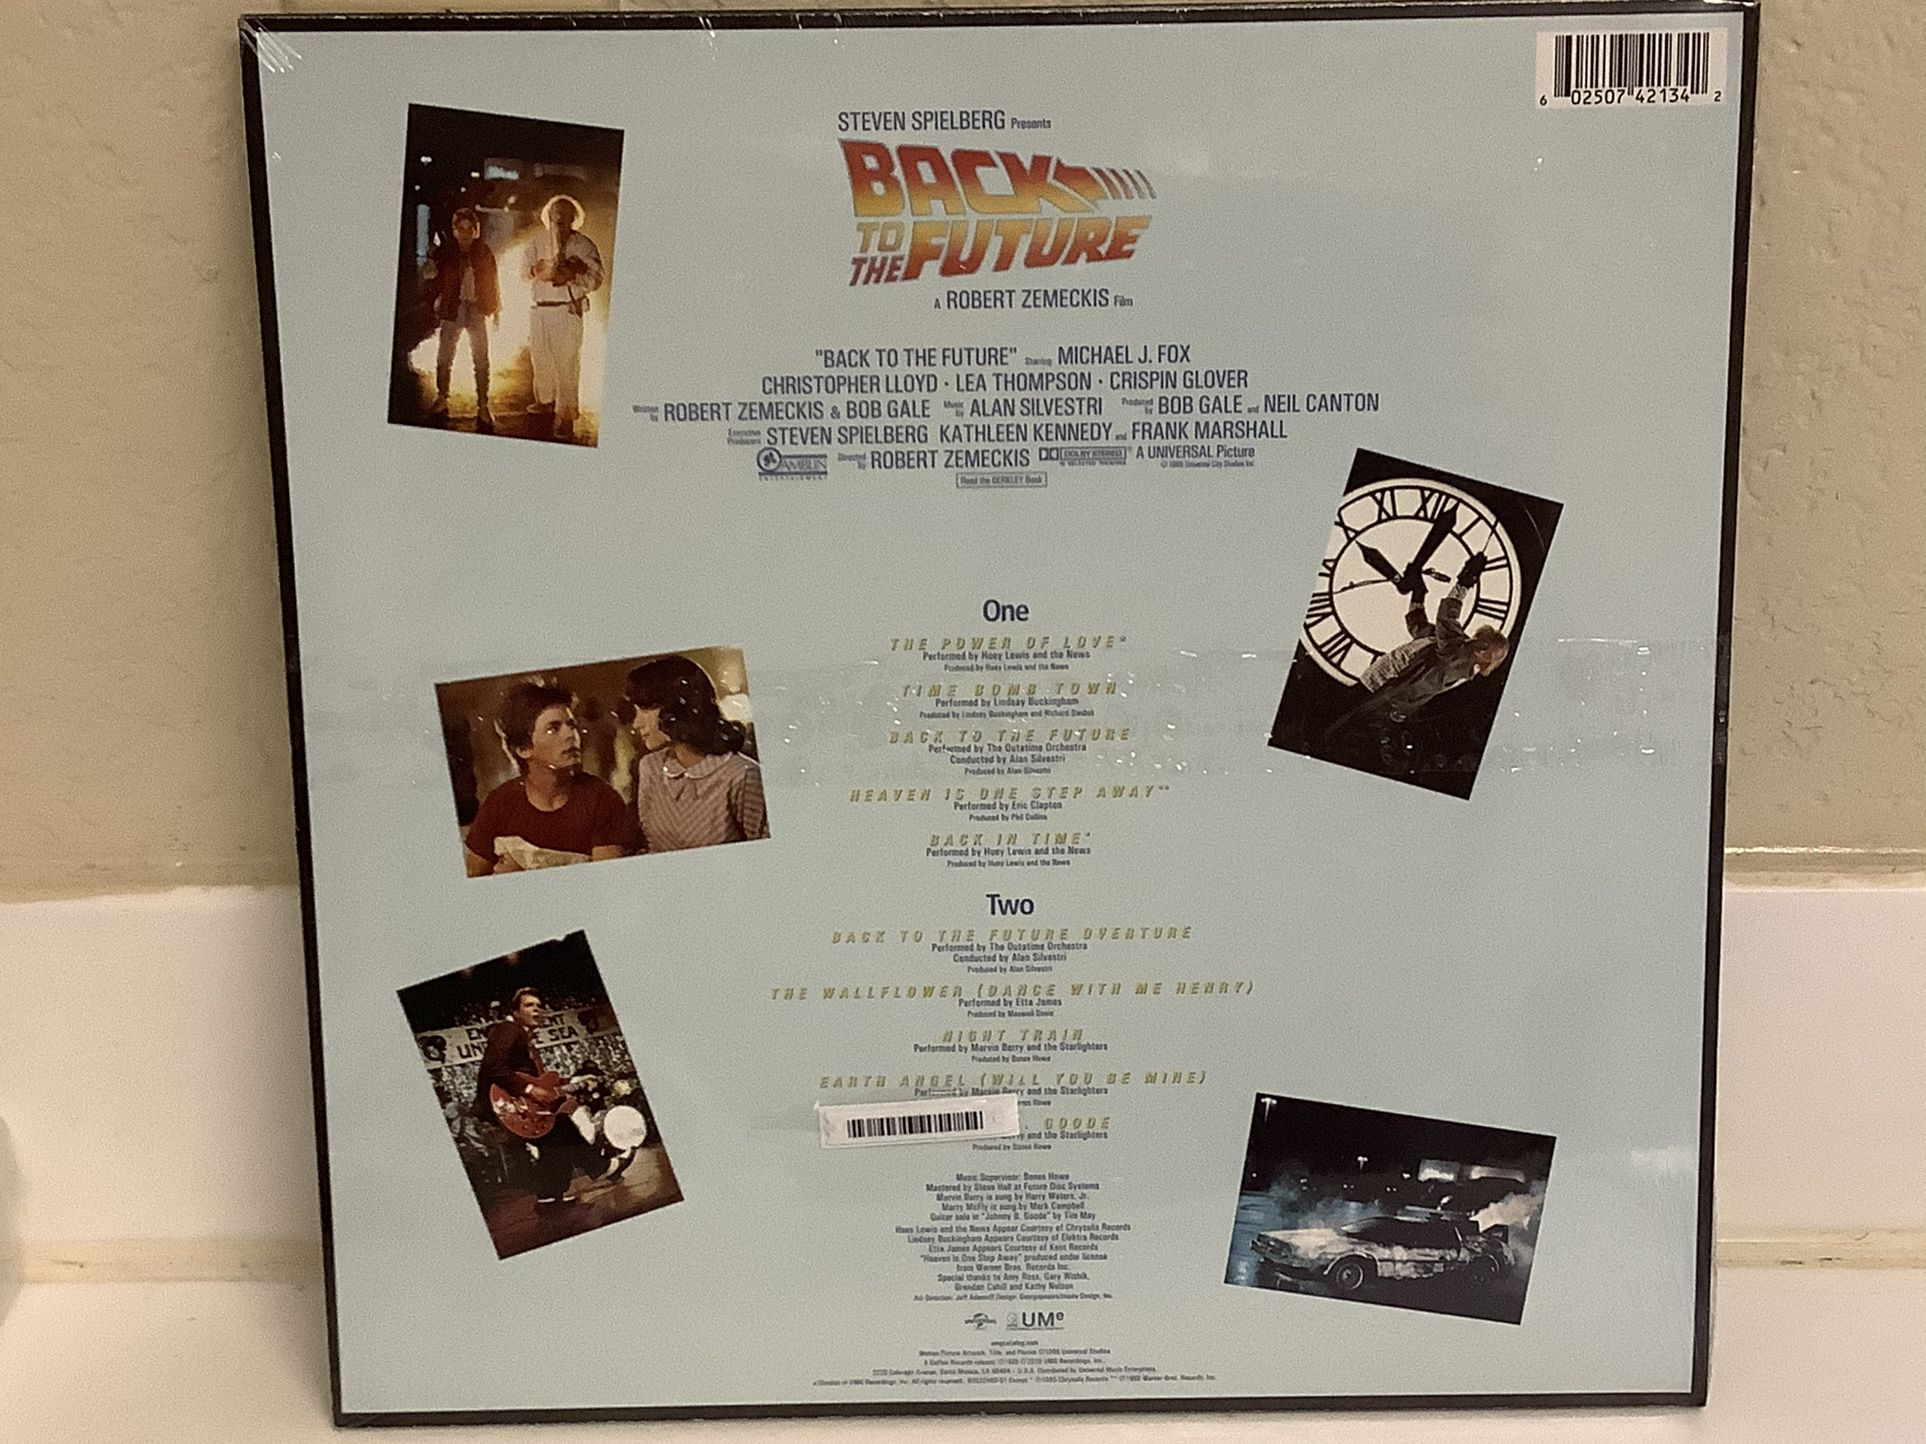 BACK TO THE FUTURE Record - Huey Lewis & The News - 80's Movie Soundtrack Vinyl - New!